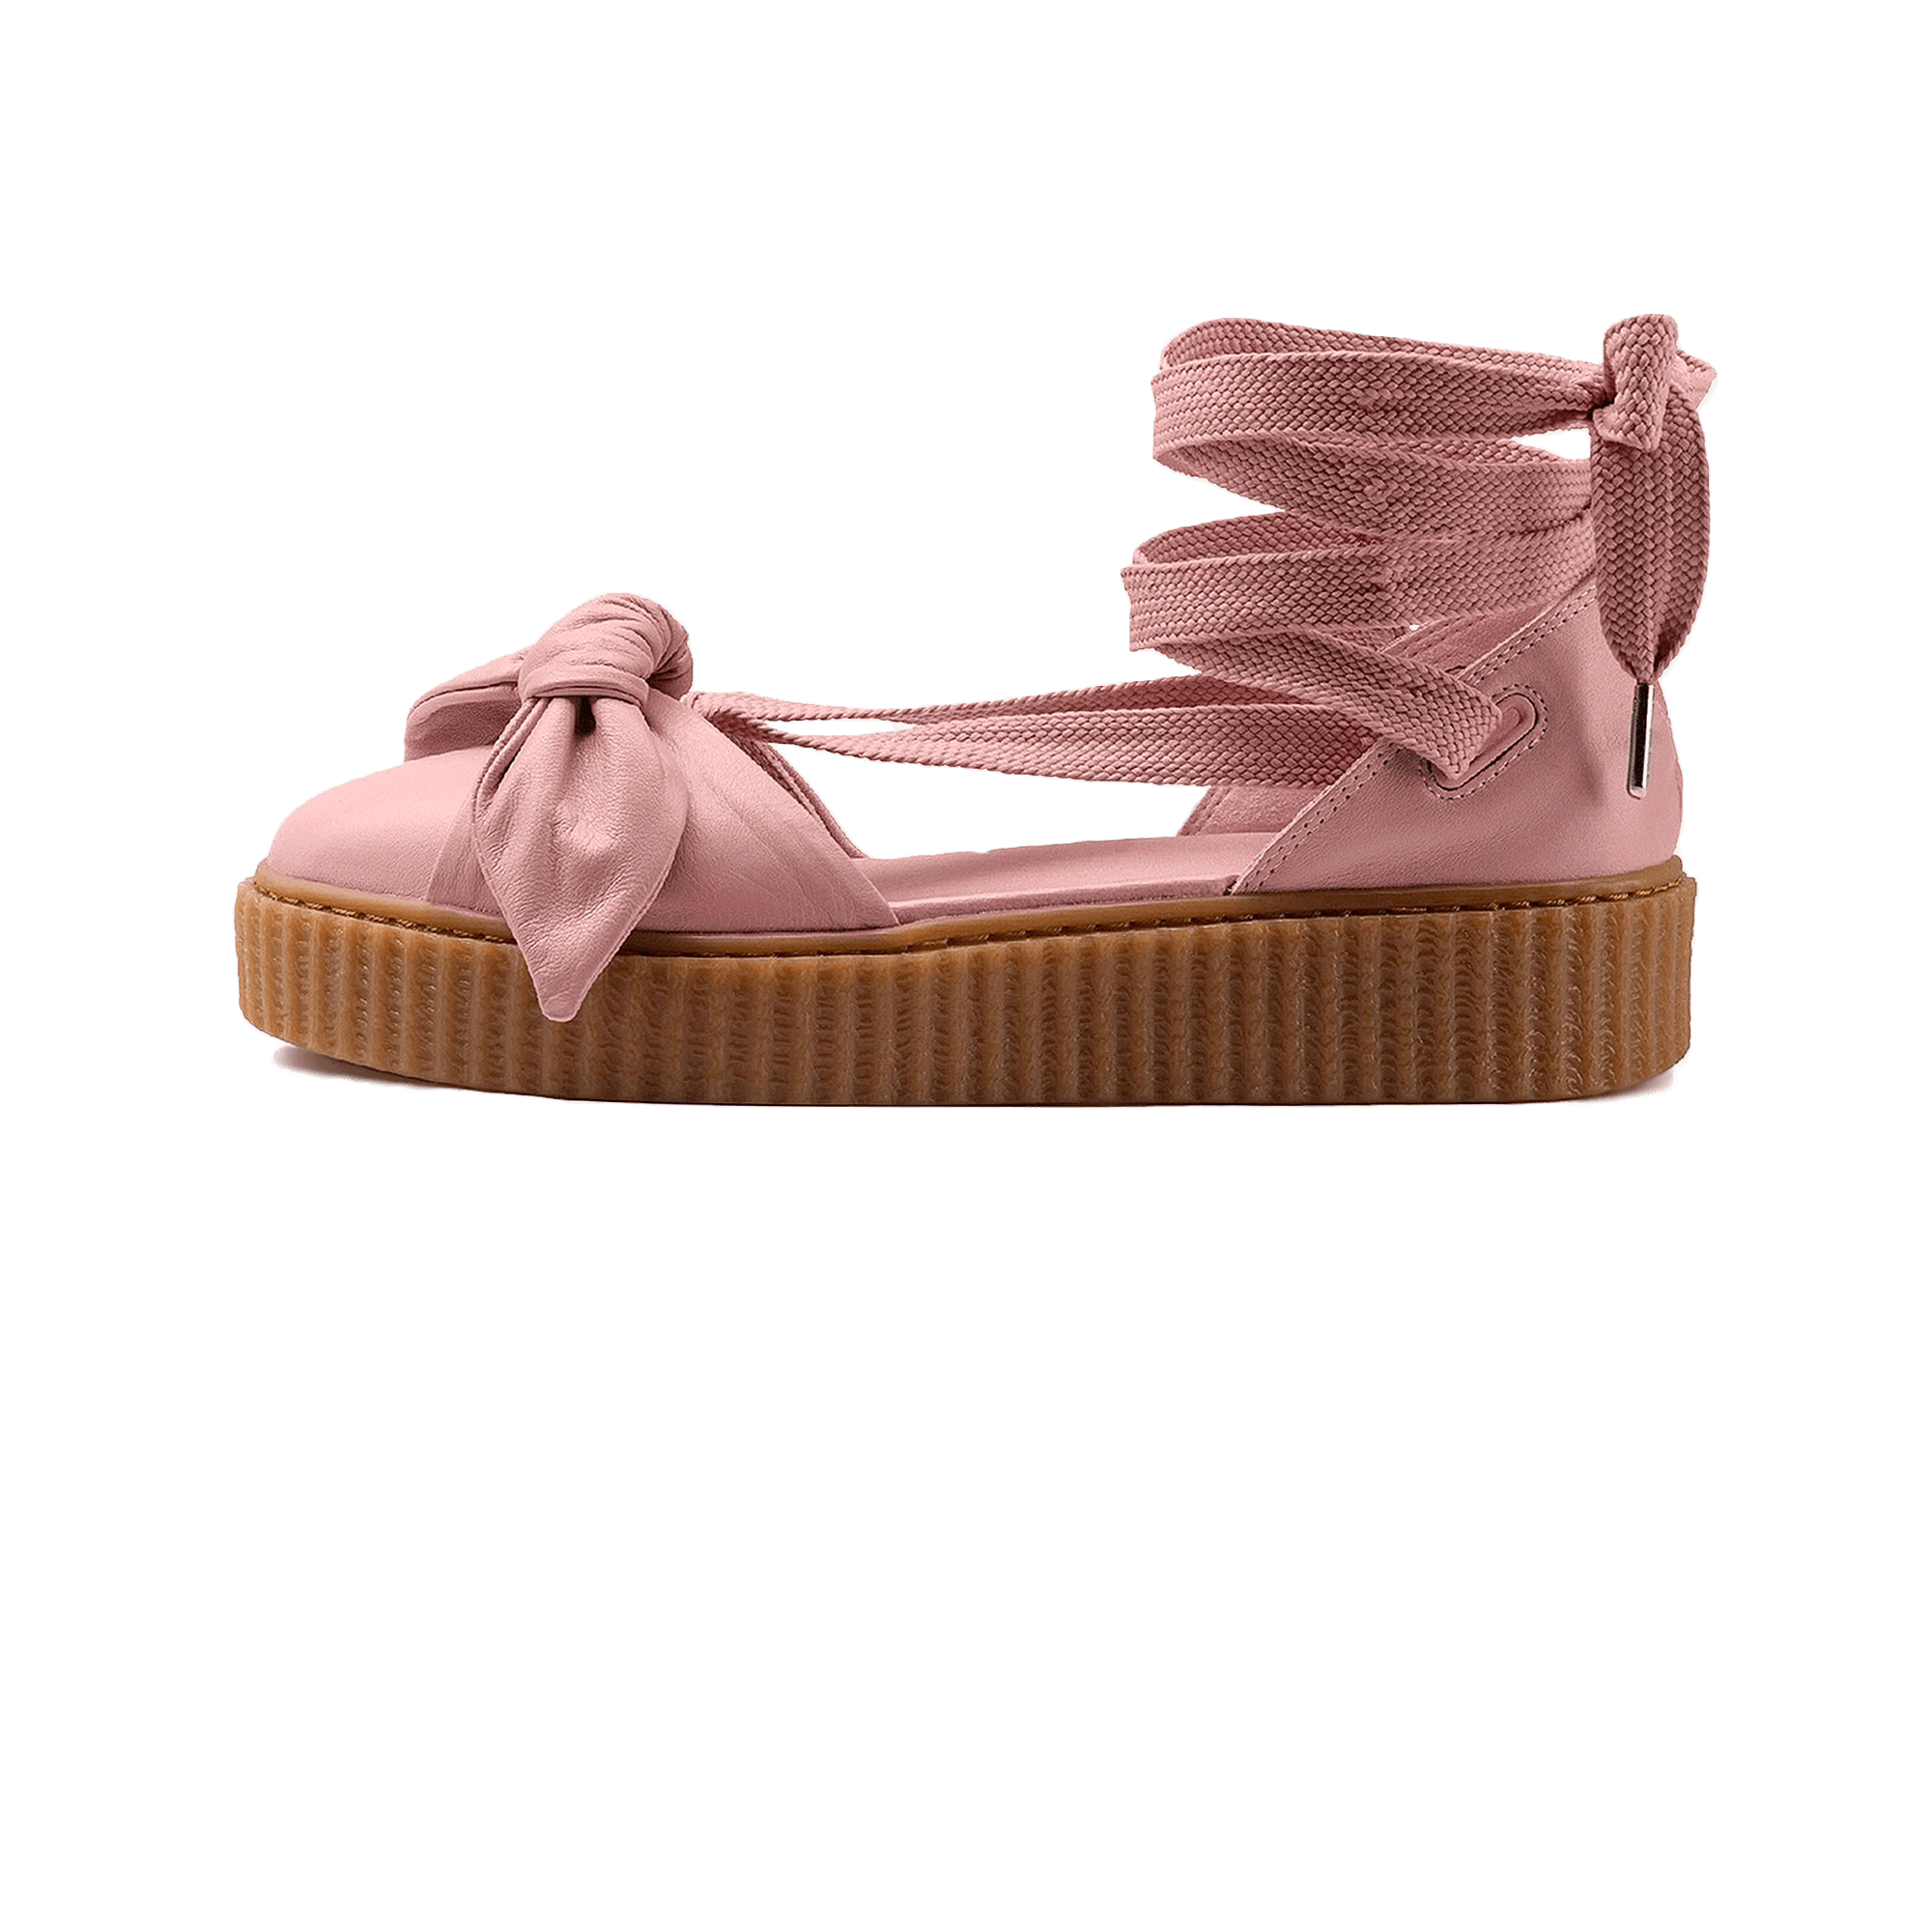 huge selection of 61bbb b9f86 Puma Fenty by Rihanna Bow Creeper Sandal pink/gum - Woman | Holypopstore.com